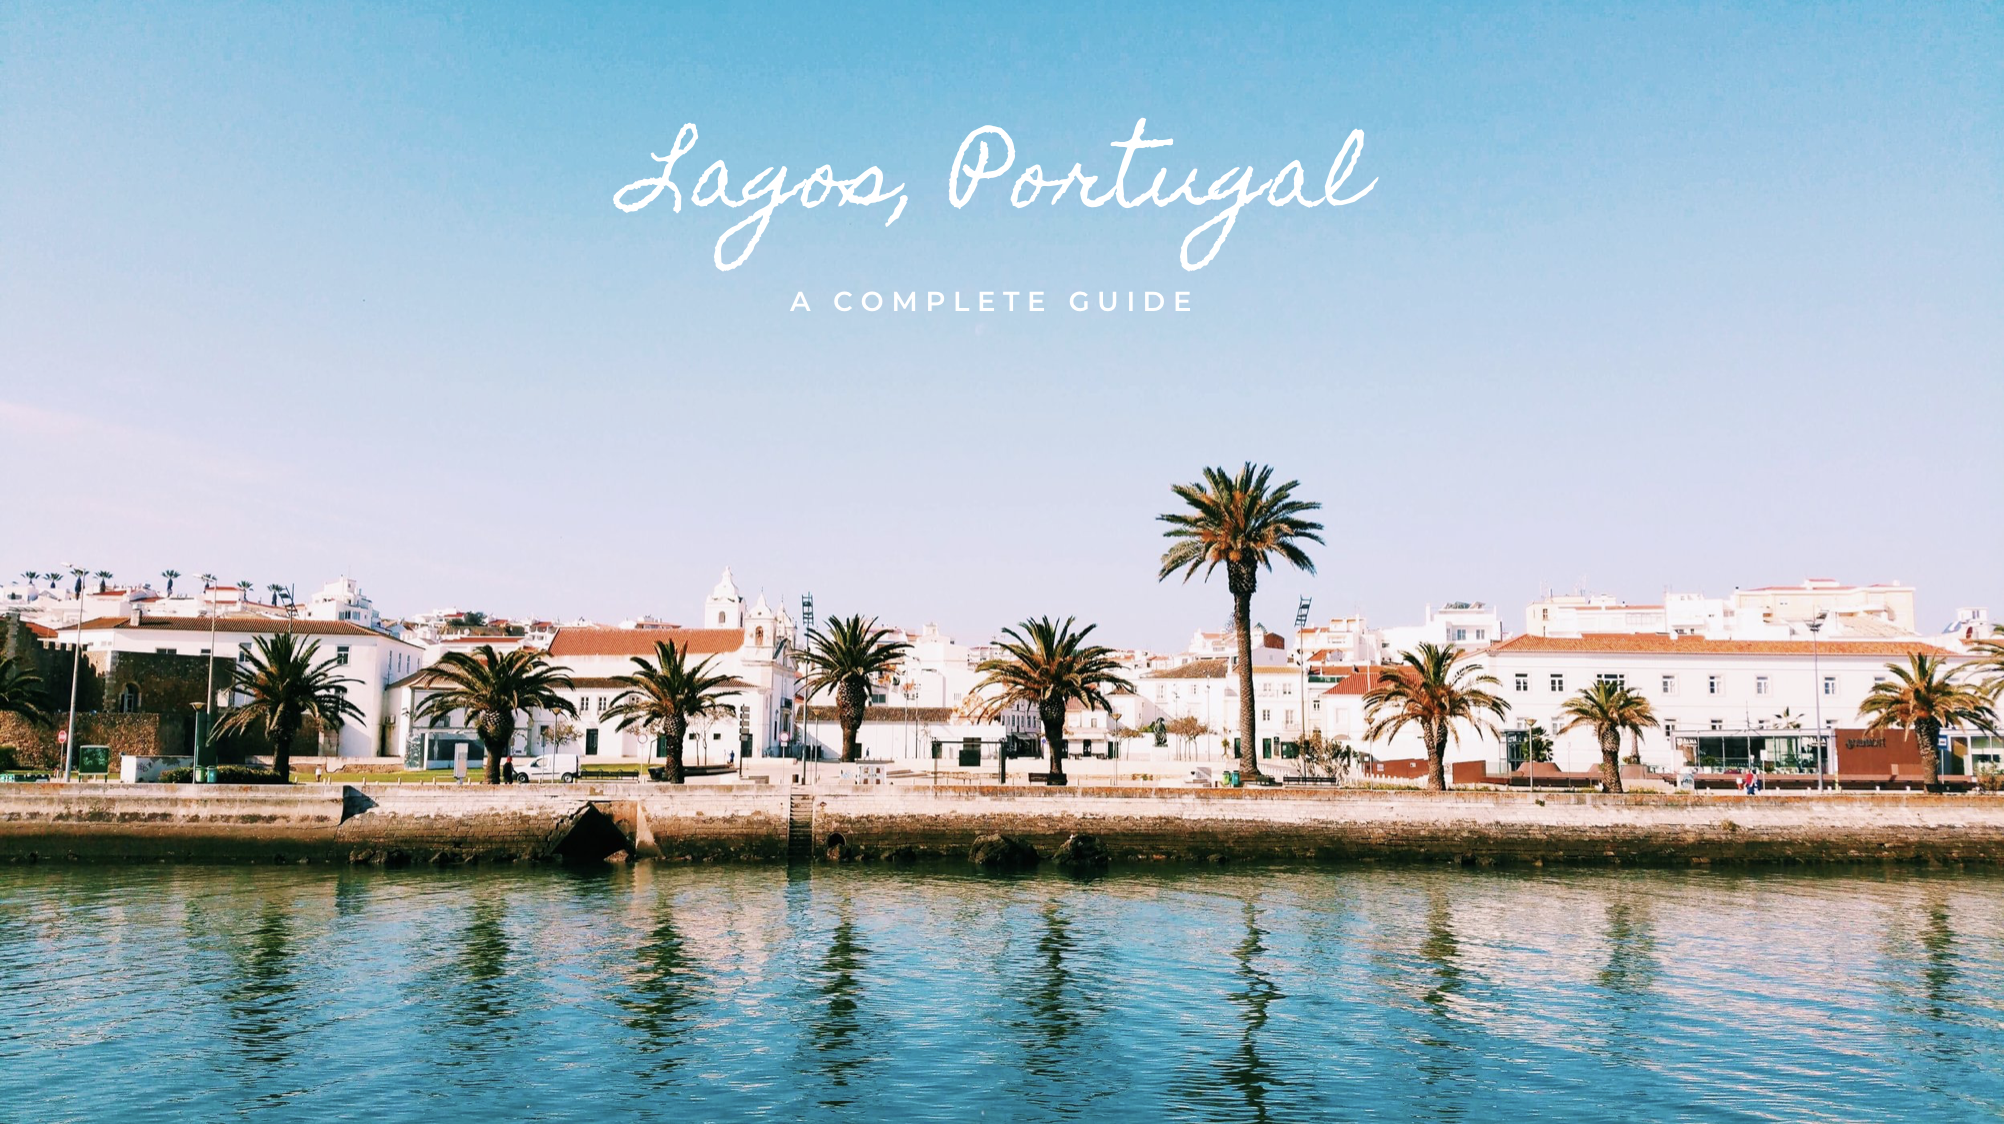 Lagos, Portugal. A complete travel guide | Soi 55 Travels